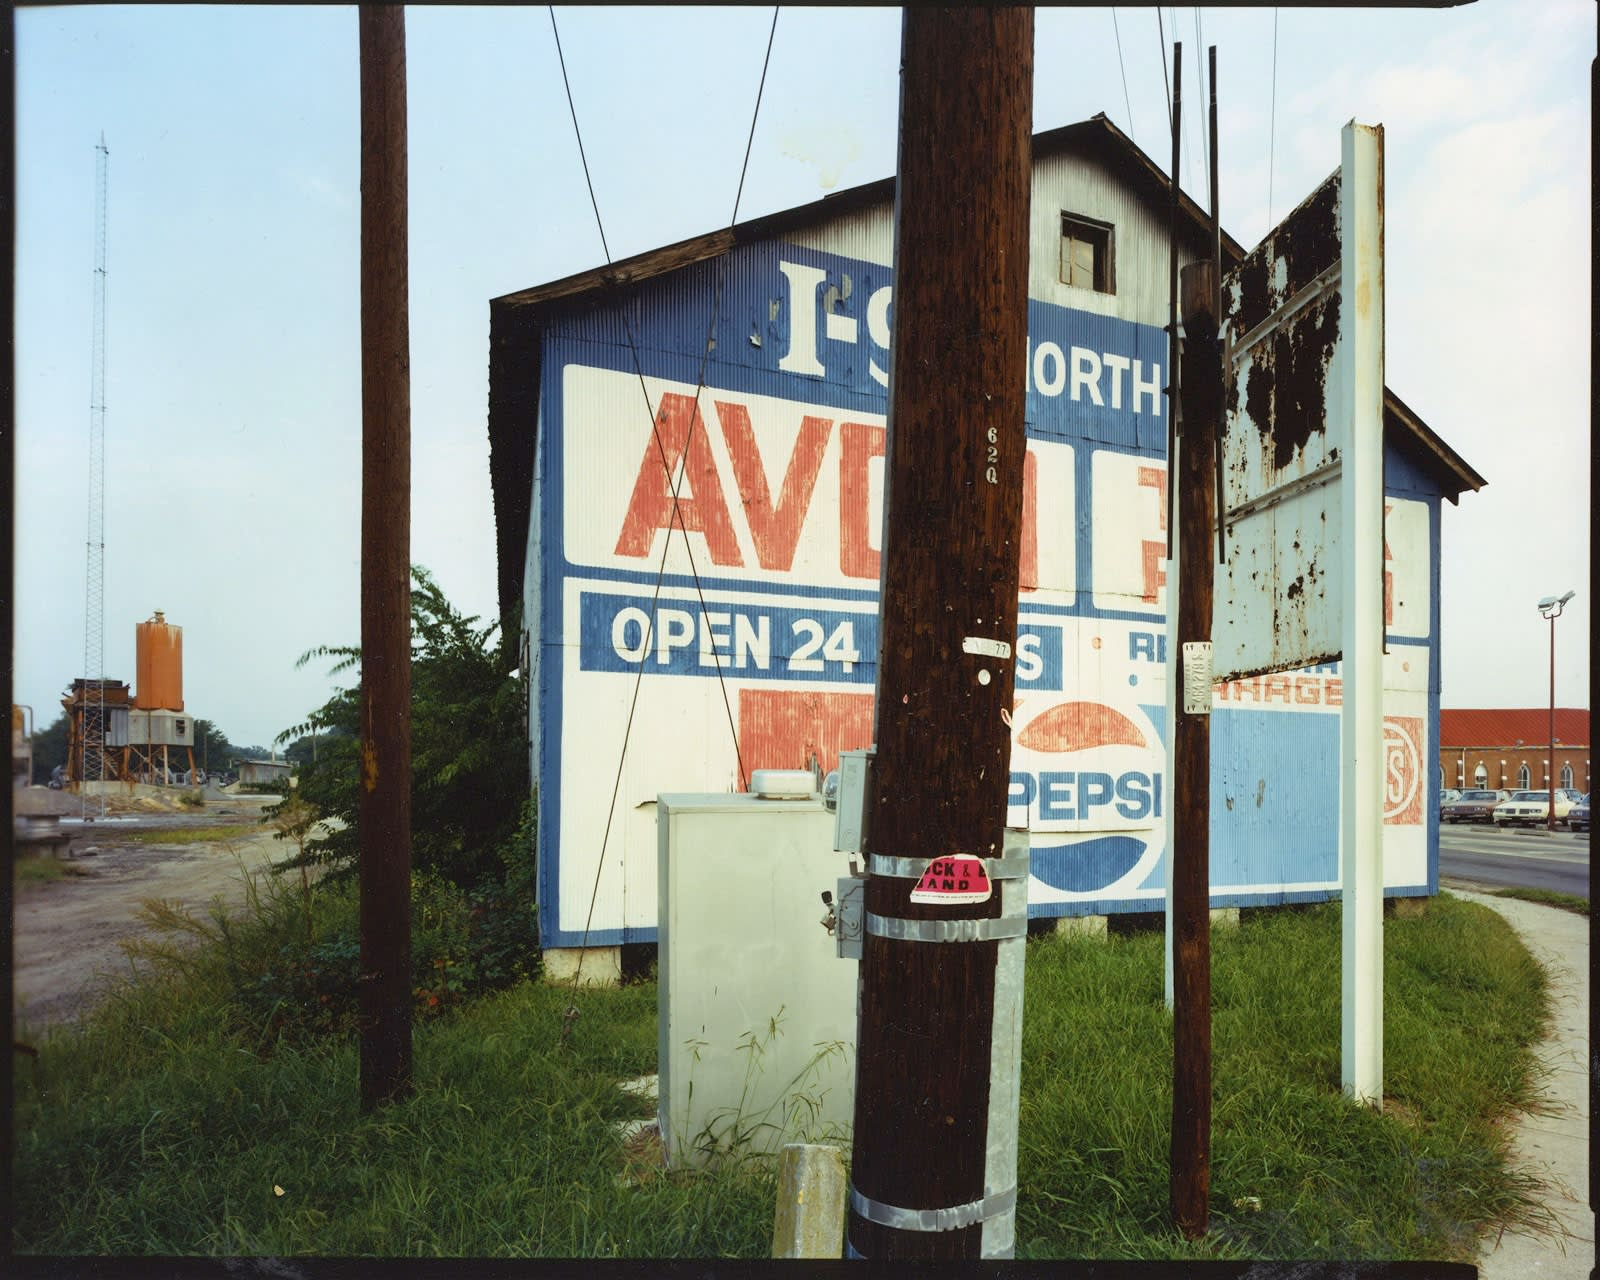 Bruce Wrighton, Utility poles in front of red/blue/withe sign (with Pepsi)